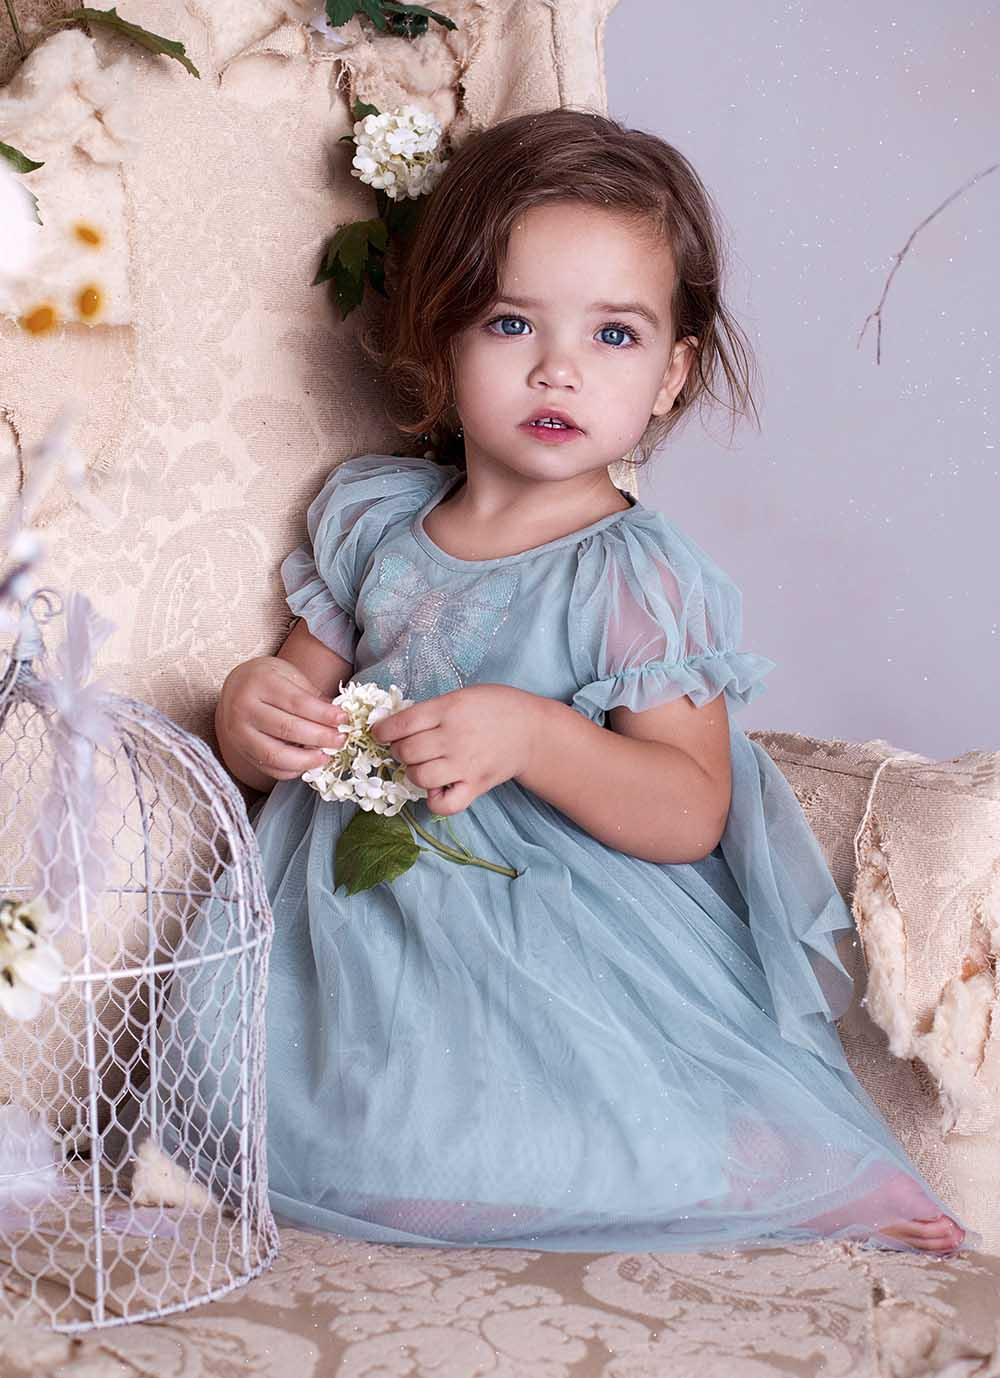 TUTU DRESS SUMMER BABY GIRL CLOTHES GIRLS red DRESSES GIRLS CLOTHING DRESSES FOR GIRLS KIDS DRESSES FOR GIRLS PRICENESS DRESSTUTU DRESS SUMMER BABY GIRL CLOTHES GIRLS red DRESSES GIRLS CLOTHING DRESSES FOR GIRLS KIDS DRESSES FOR GIRLS PRICENESS DRESS